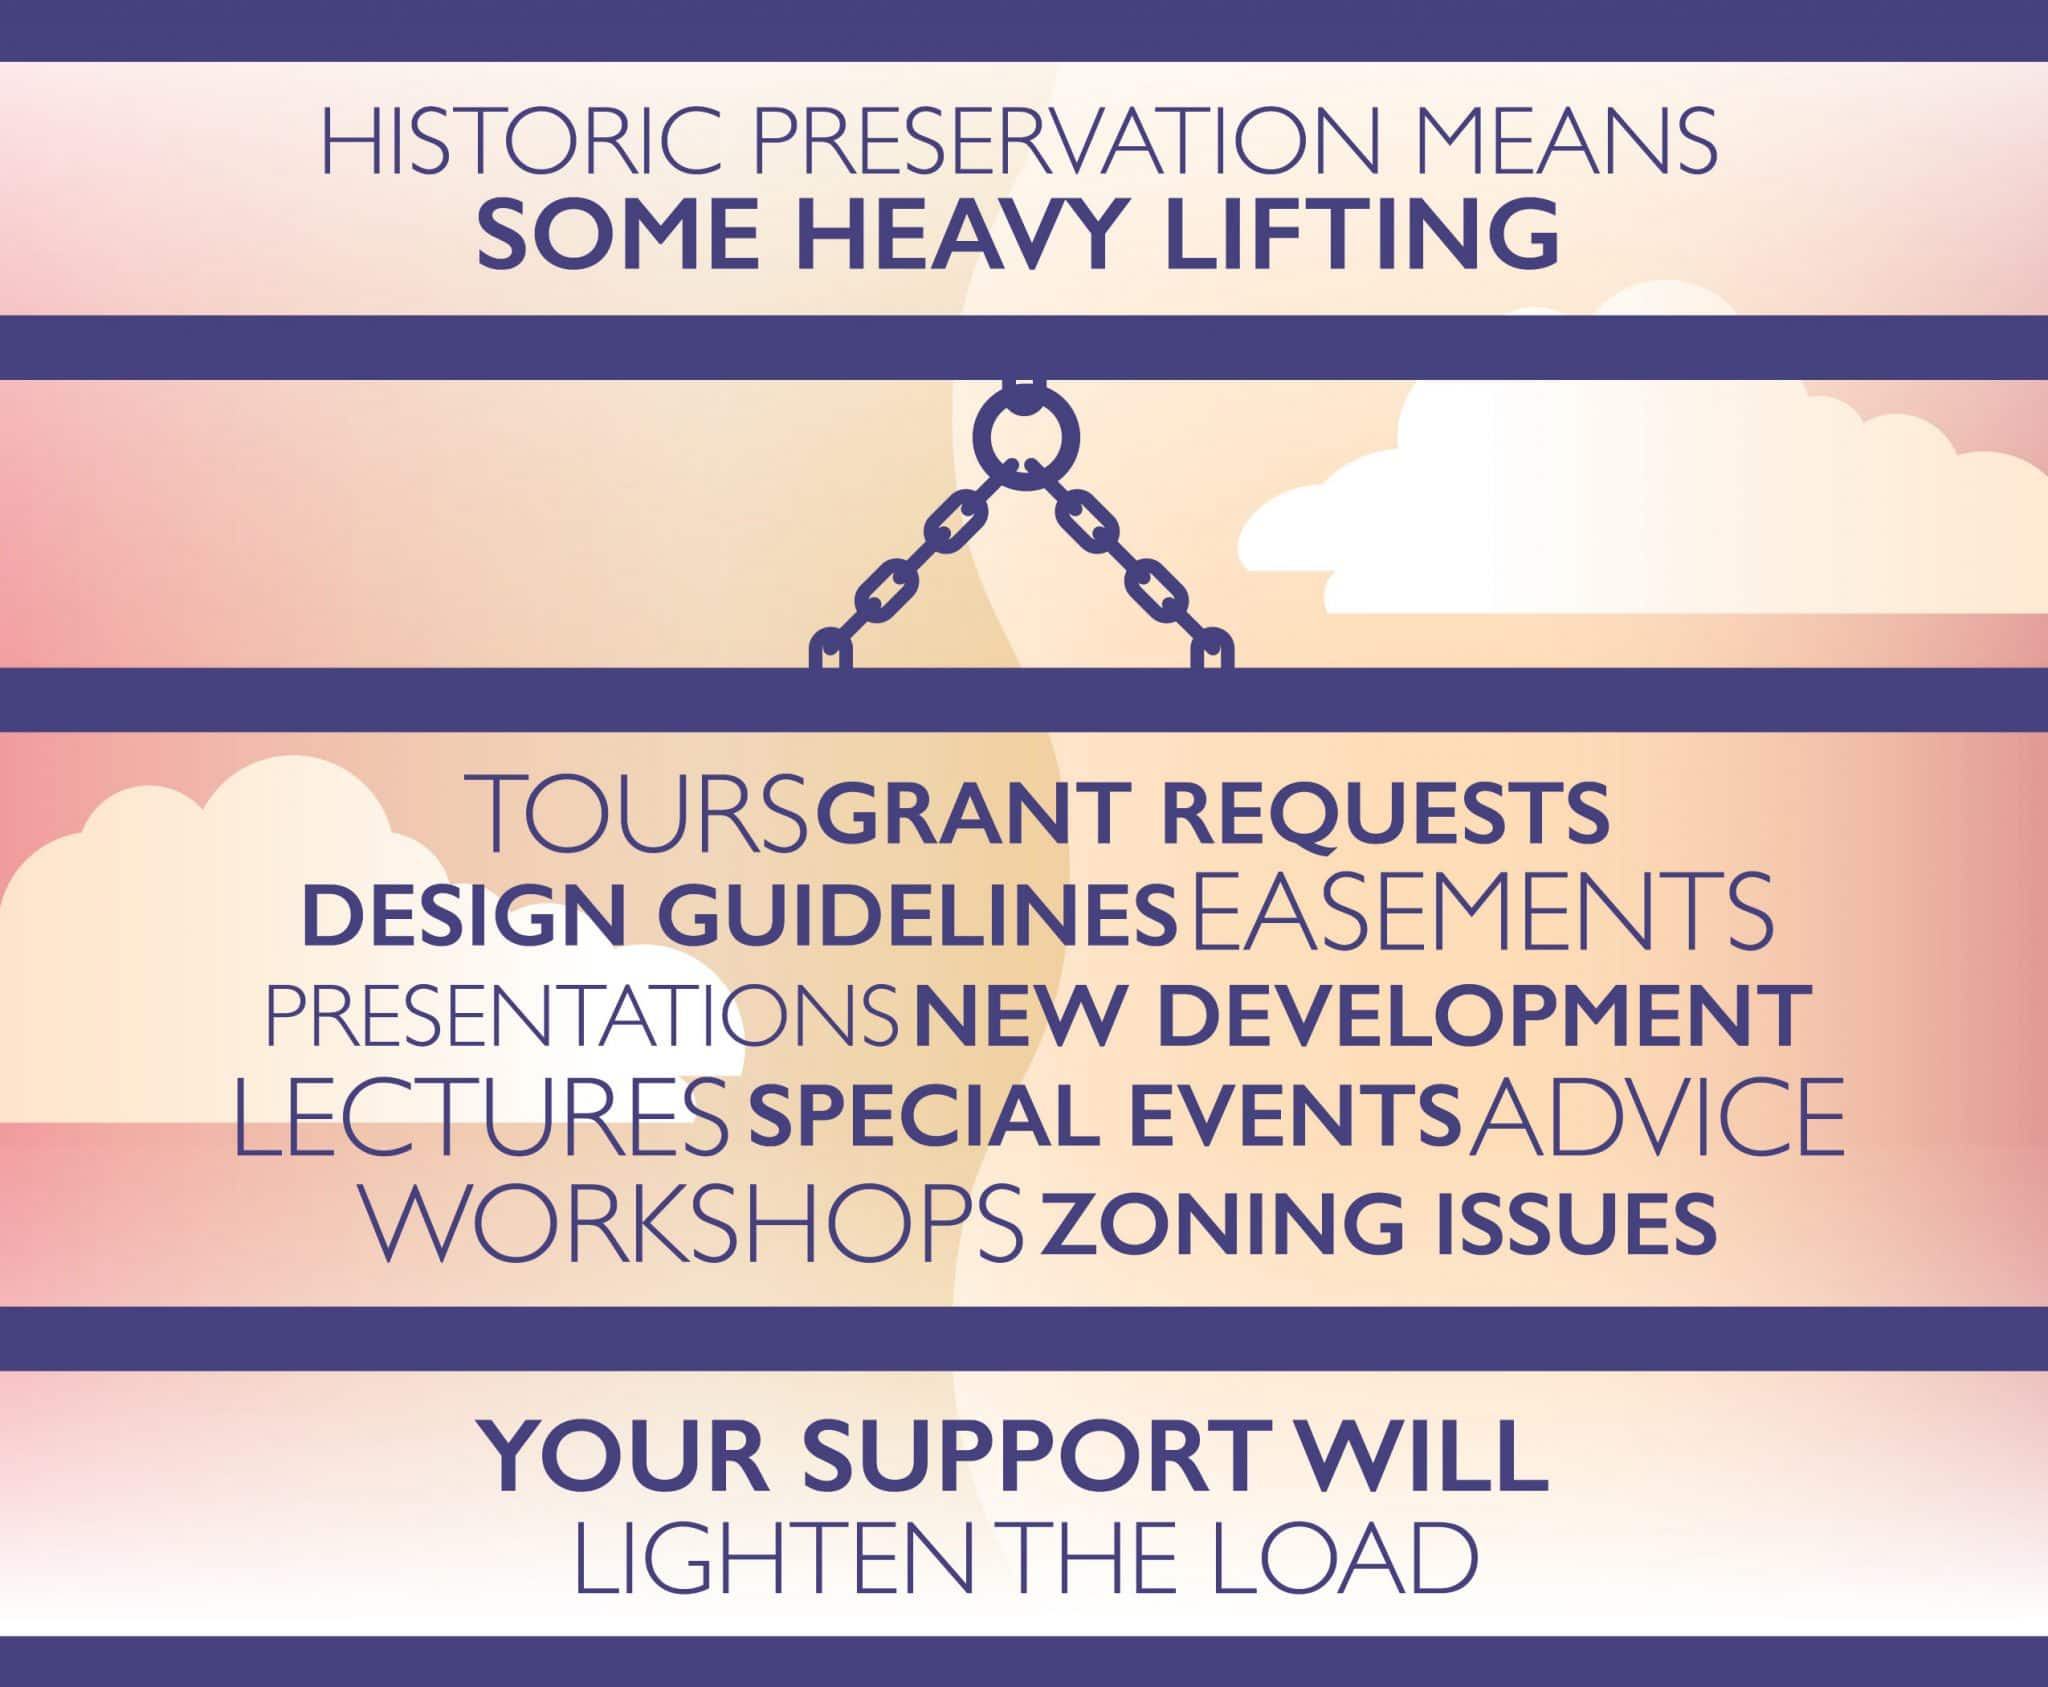 Annual Giving Historic Preservation Means Some Heavy Lifting